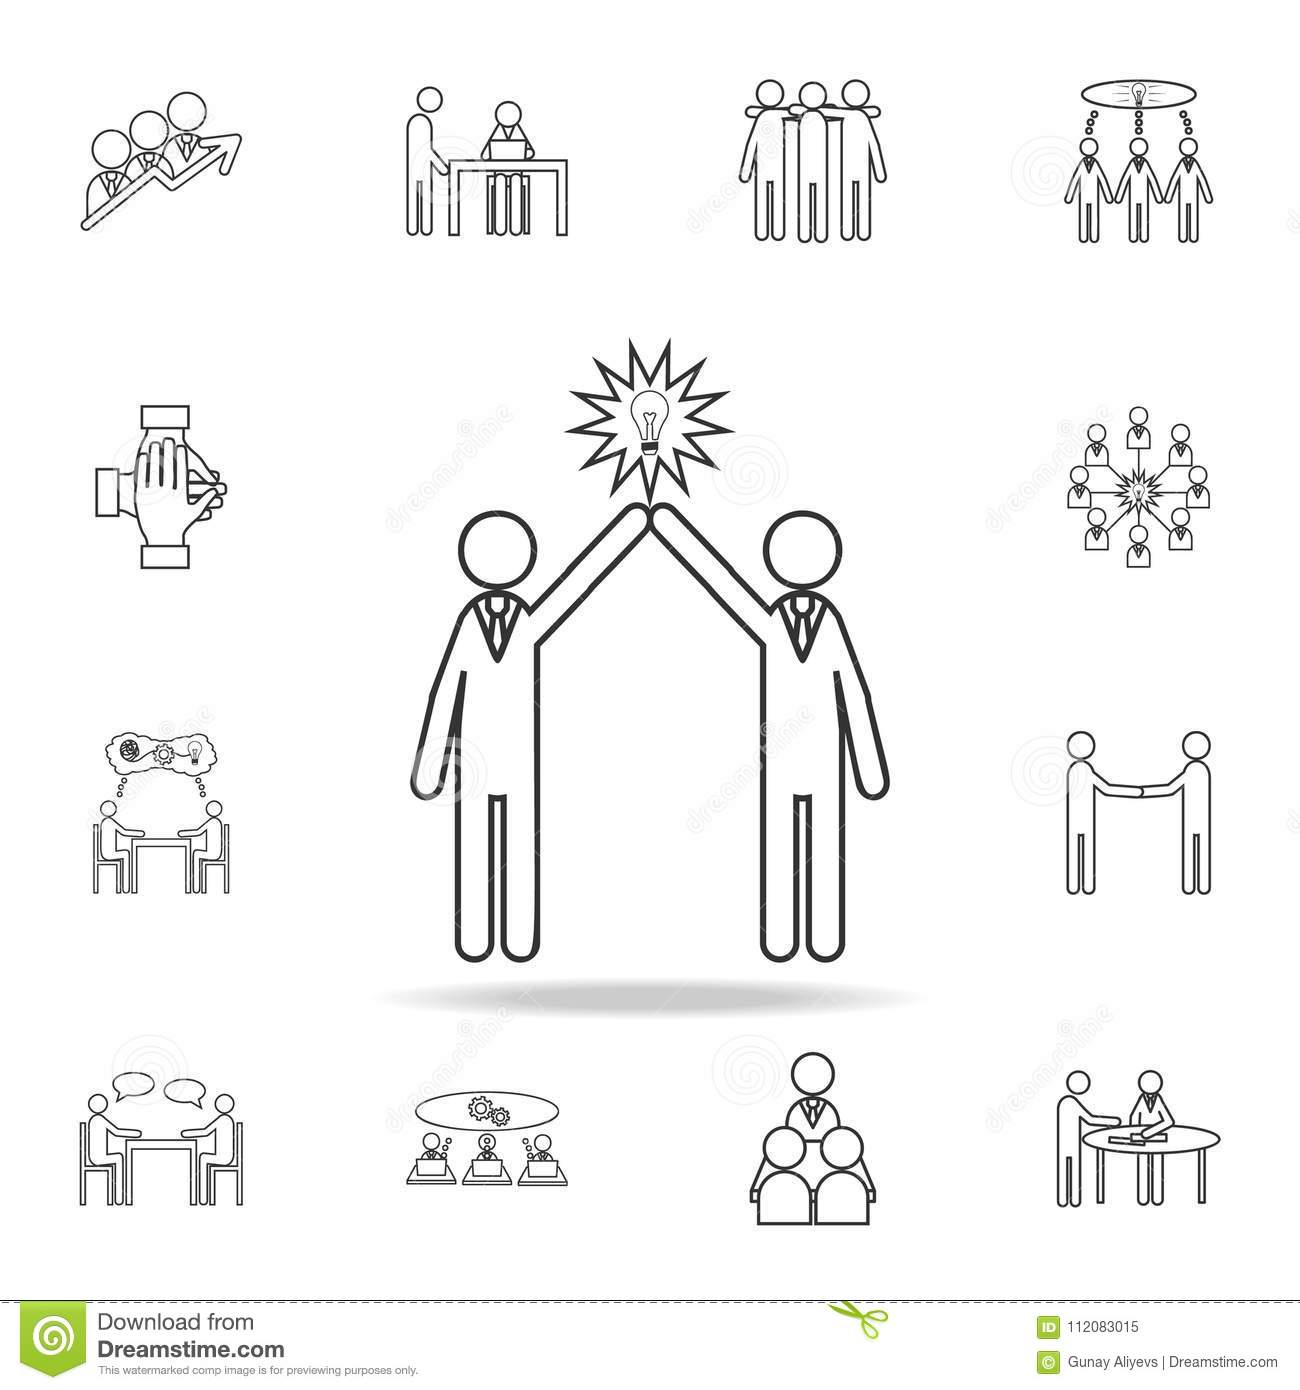 Light bulb people concept of two people icon. Detailed set of team work outline icons. Premium quality graphic design icon. One of